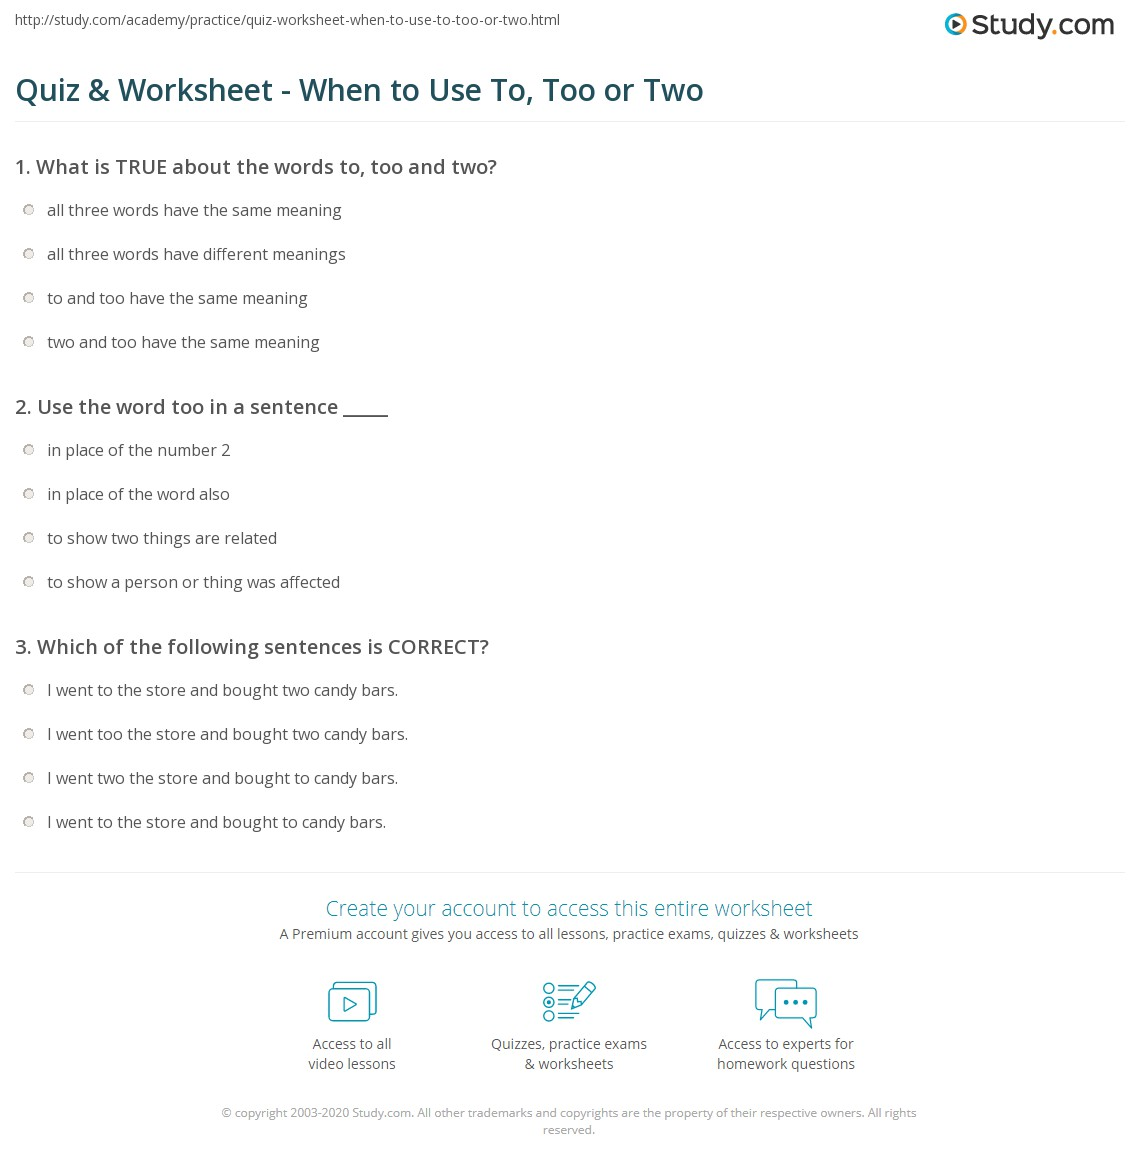 Quiz Worksheet When to Use To Too or Two – To Too Two Worksheet